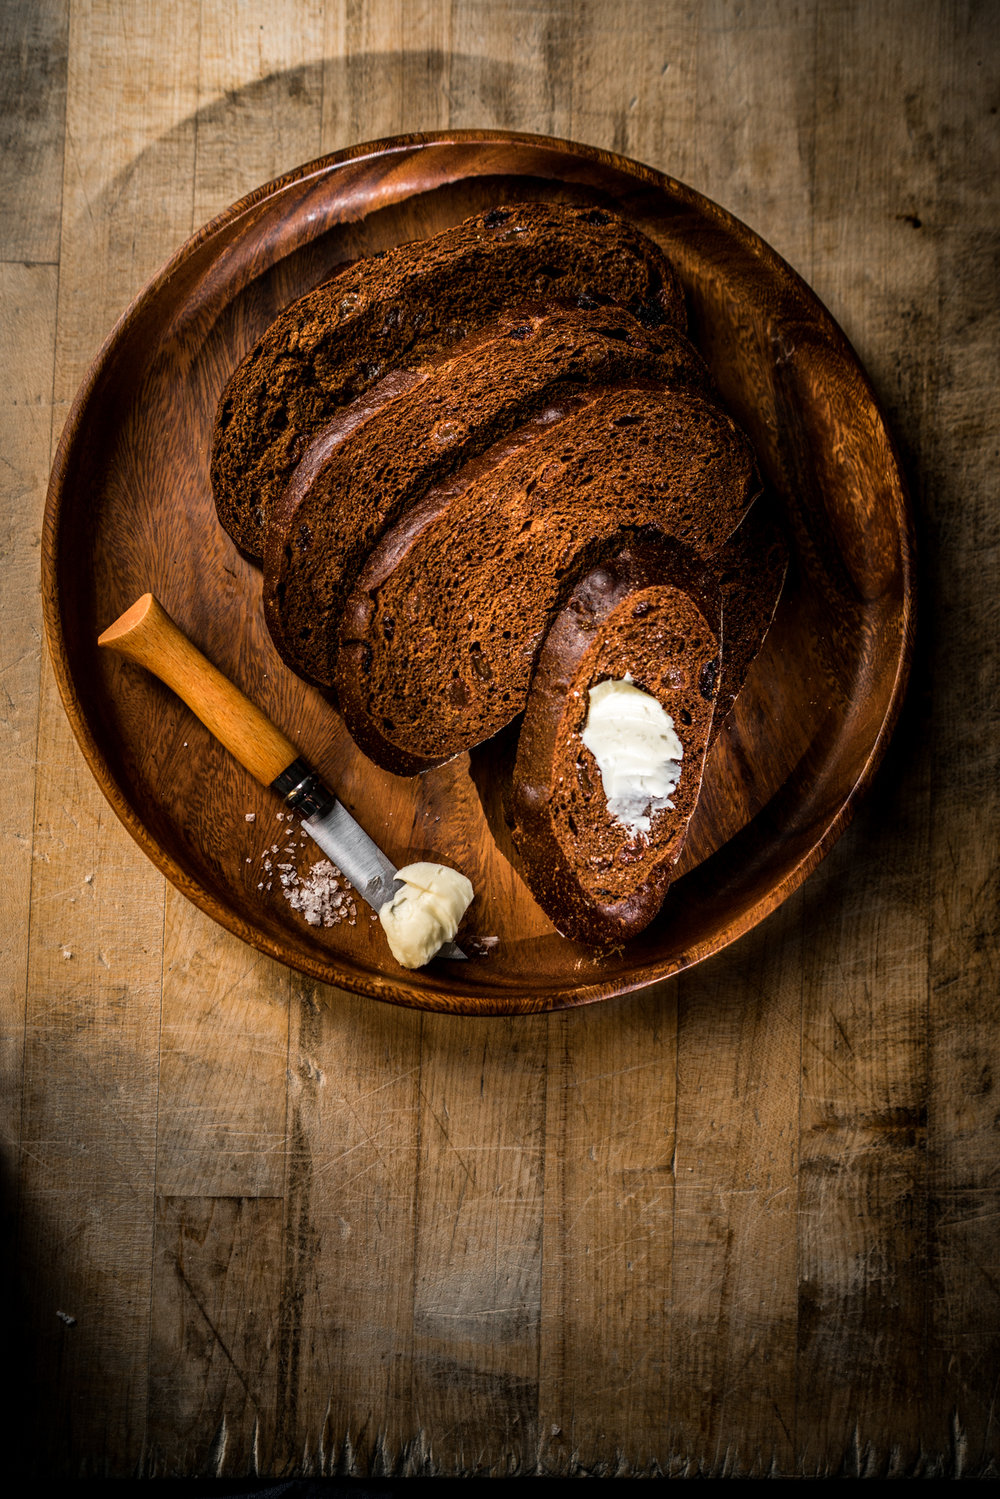 Vieger Food Photograpgy and Styling Empire Baking Co Rye Bread.jpg